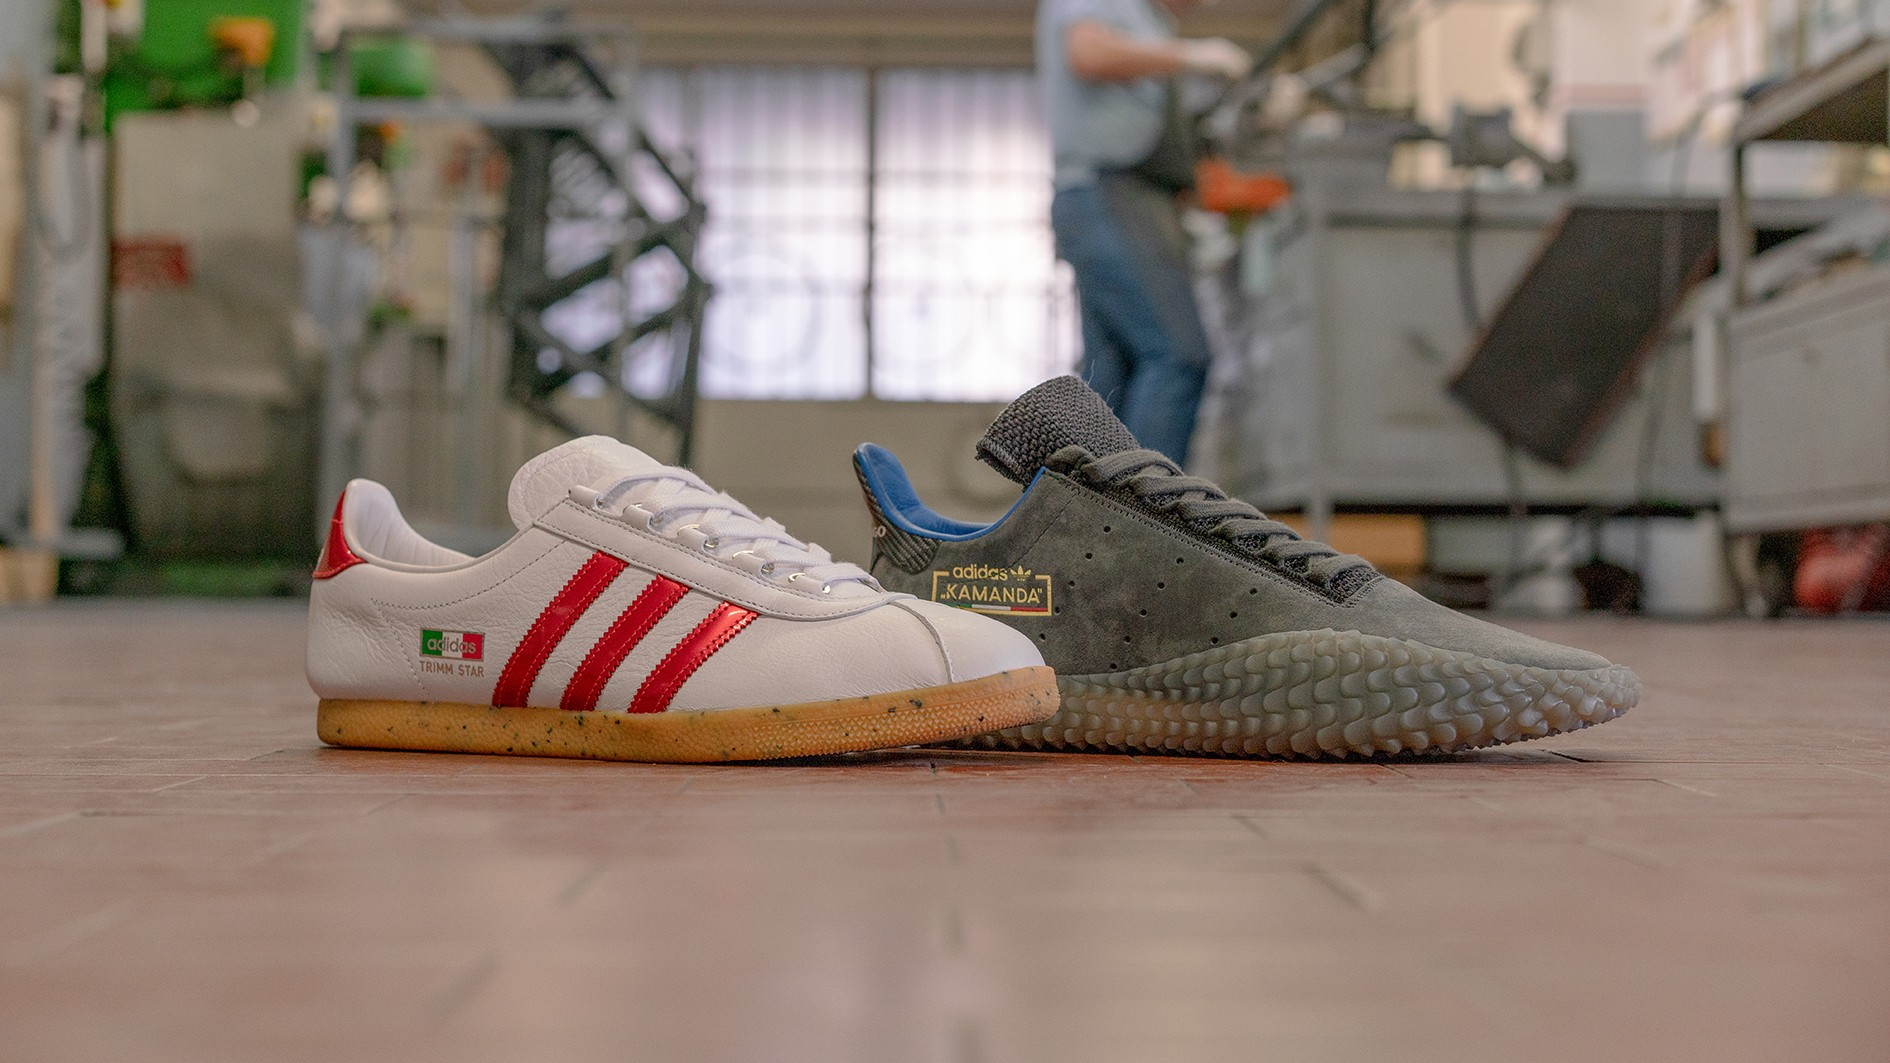 Adidas, Colnago and Size have teamed up to create a range of two fresh daps